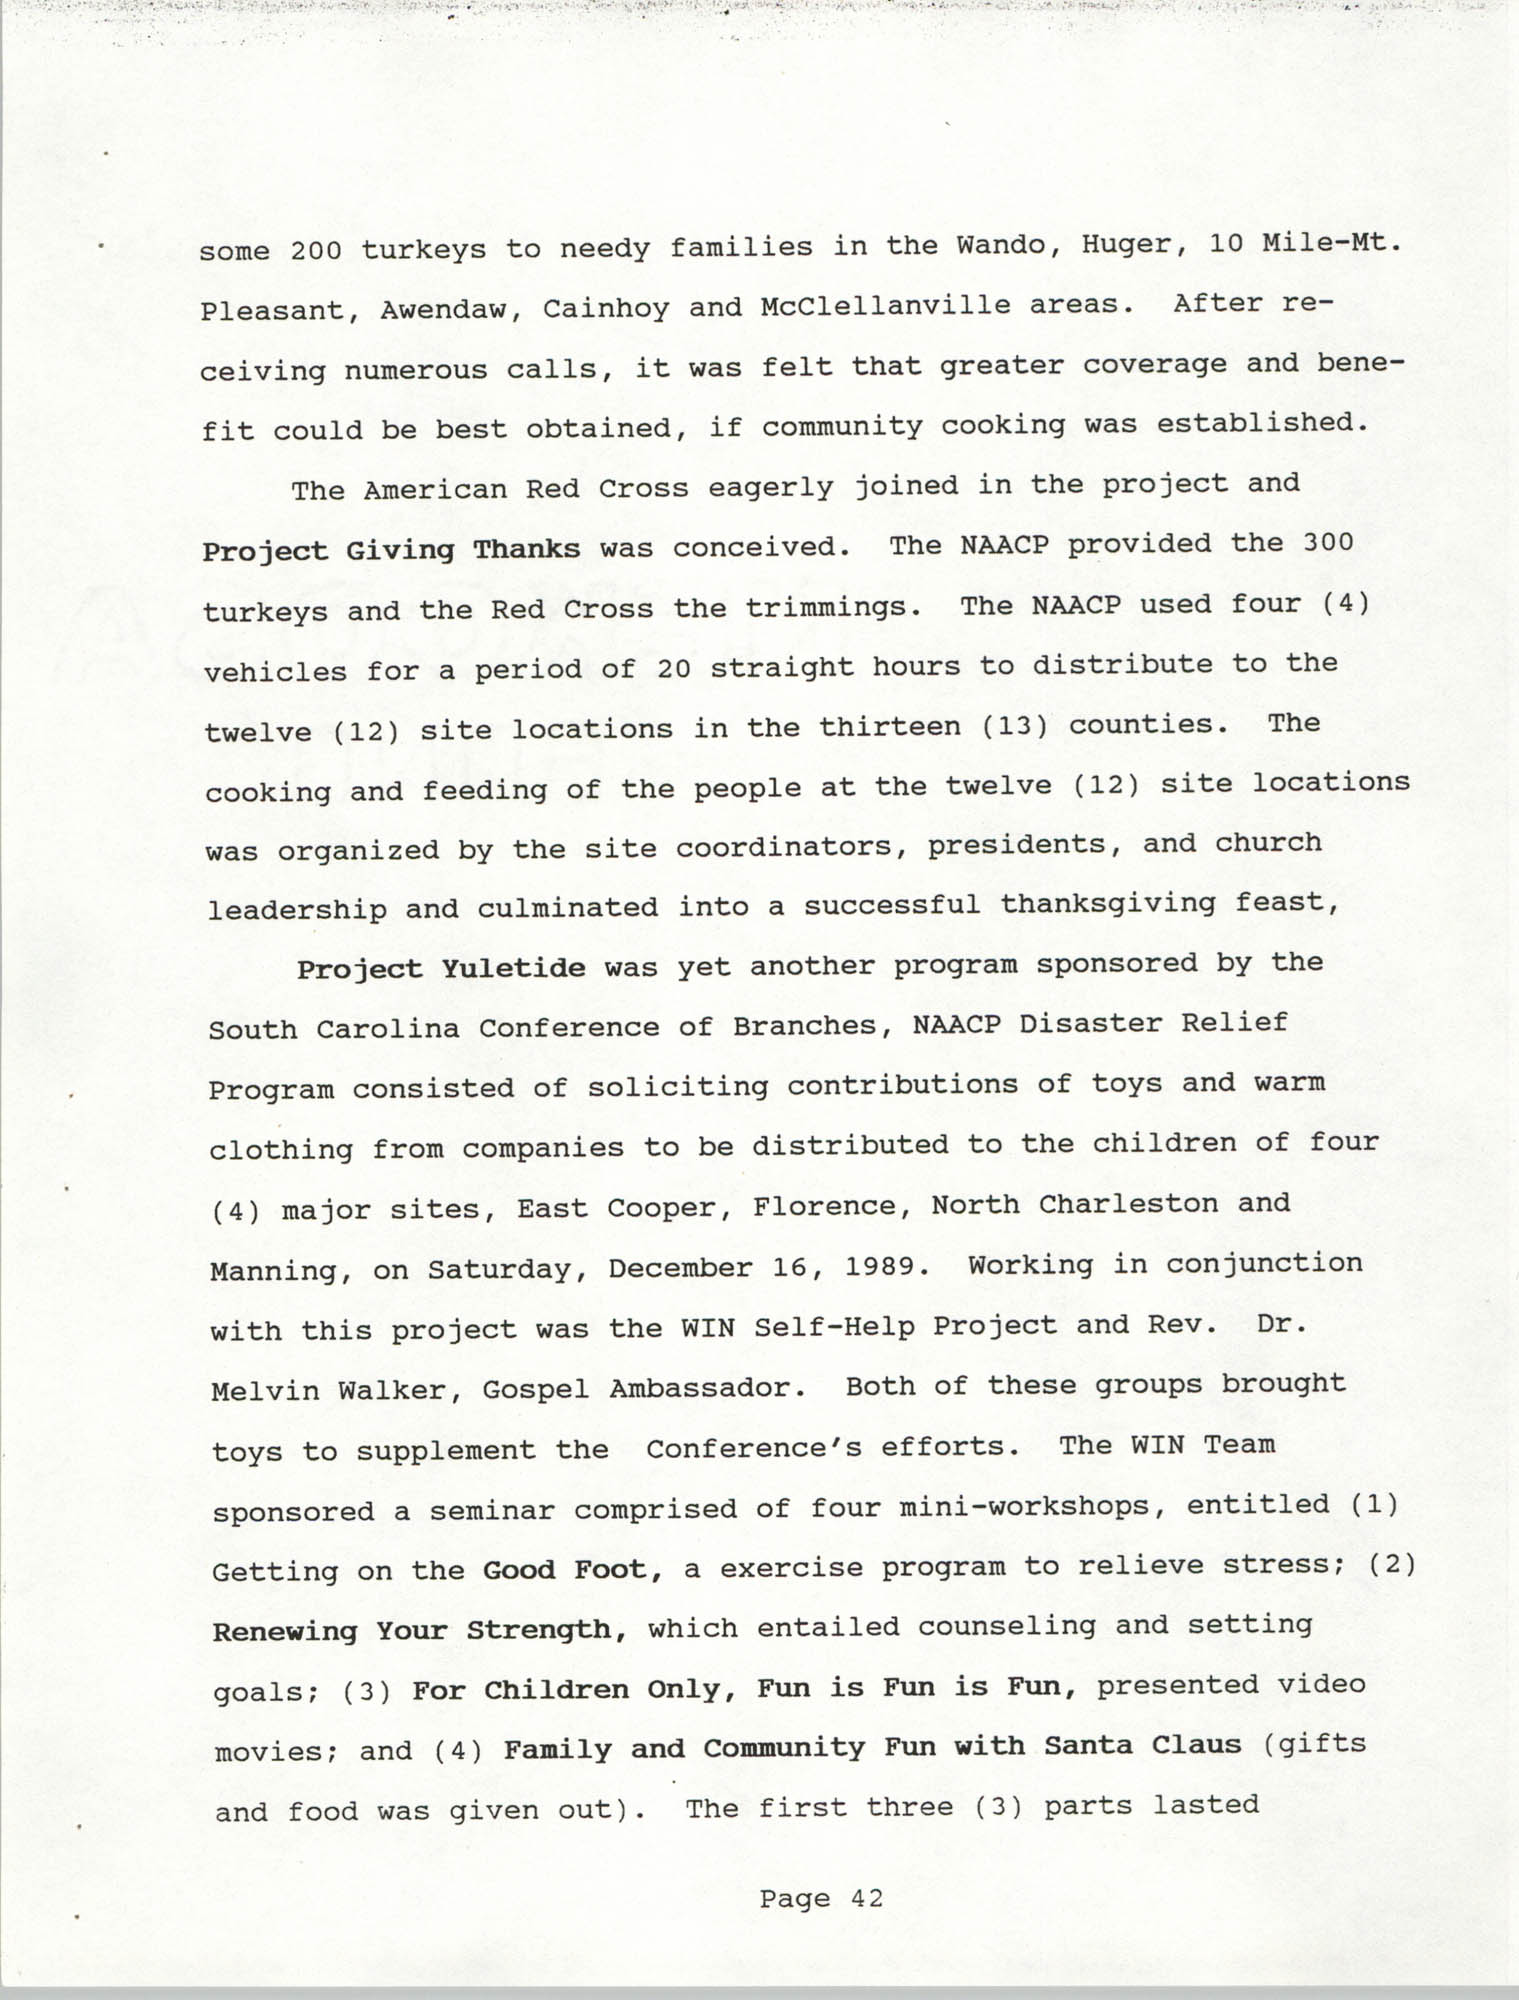 South Carolina Conference of Branches of the NAACP, 1990 Annual Report, Part Two, Page 42